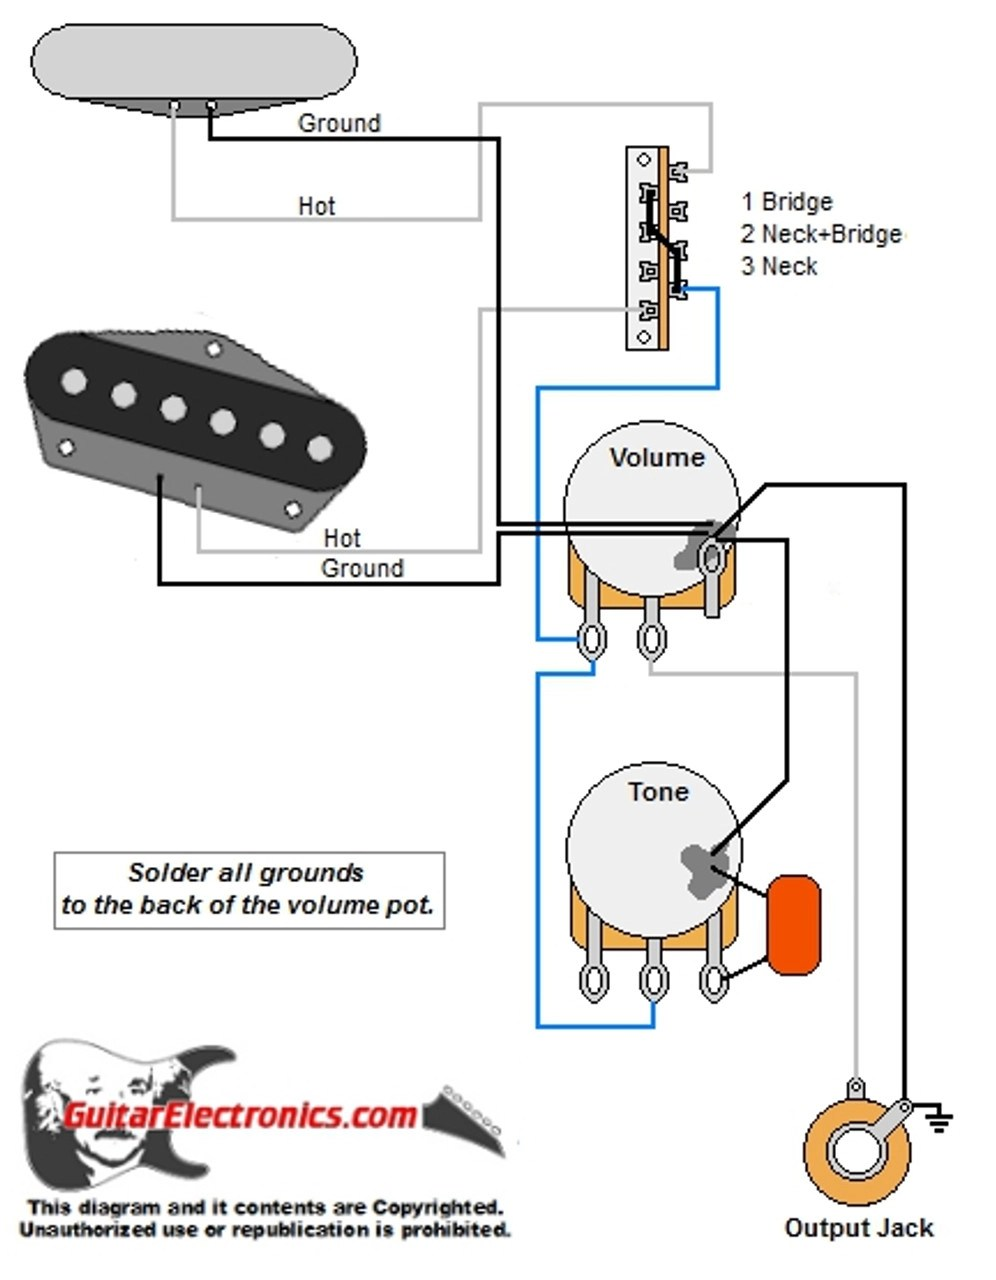 medium resolution of telecaster wiring diagram wiring diagrams mytele style guitar wiring diagram telecaster wiring diagram seymour duncan telecaster